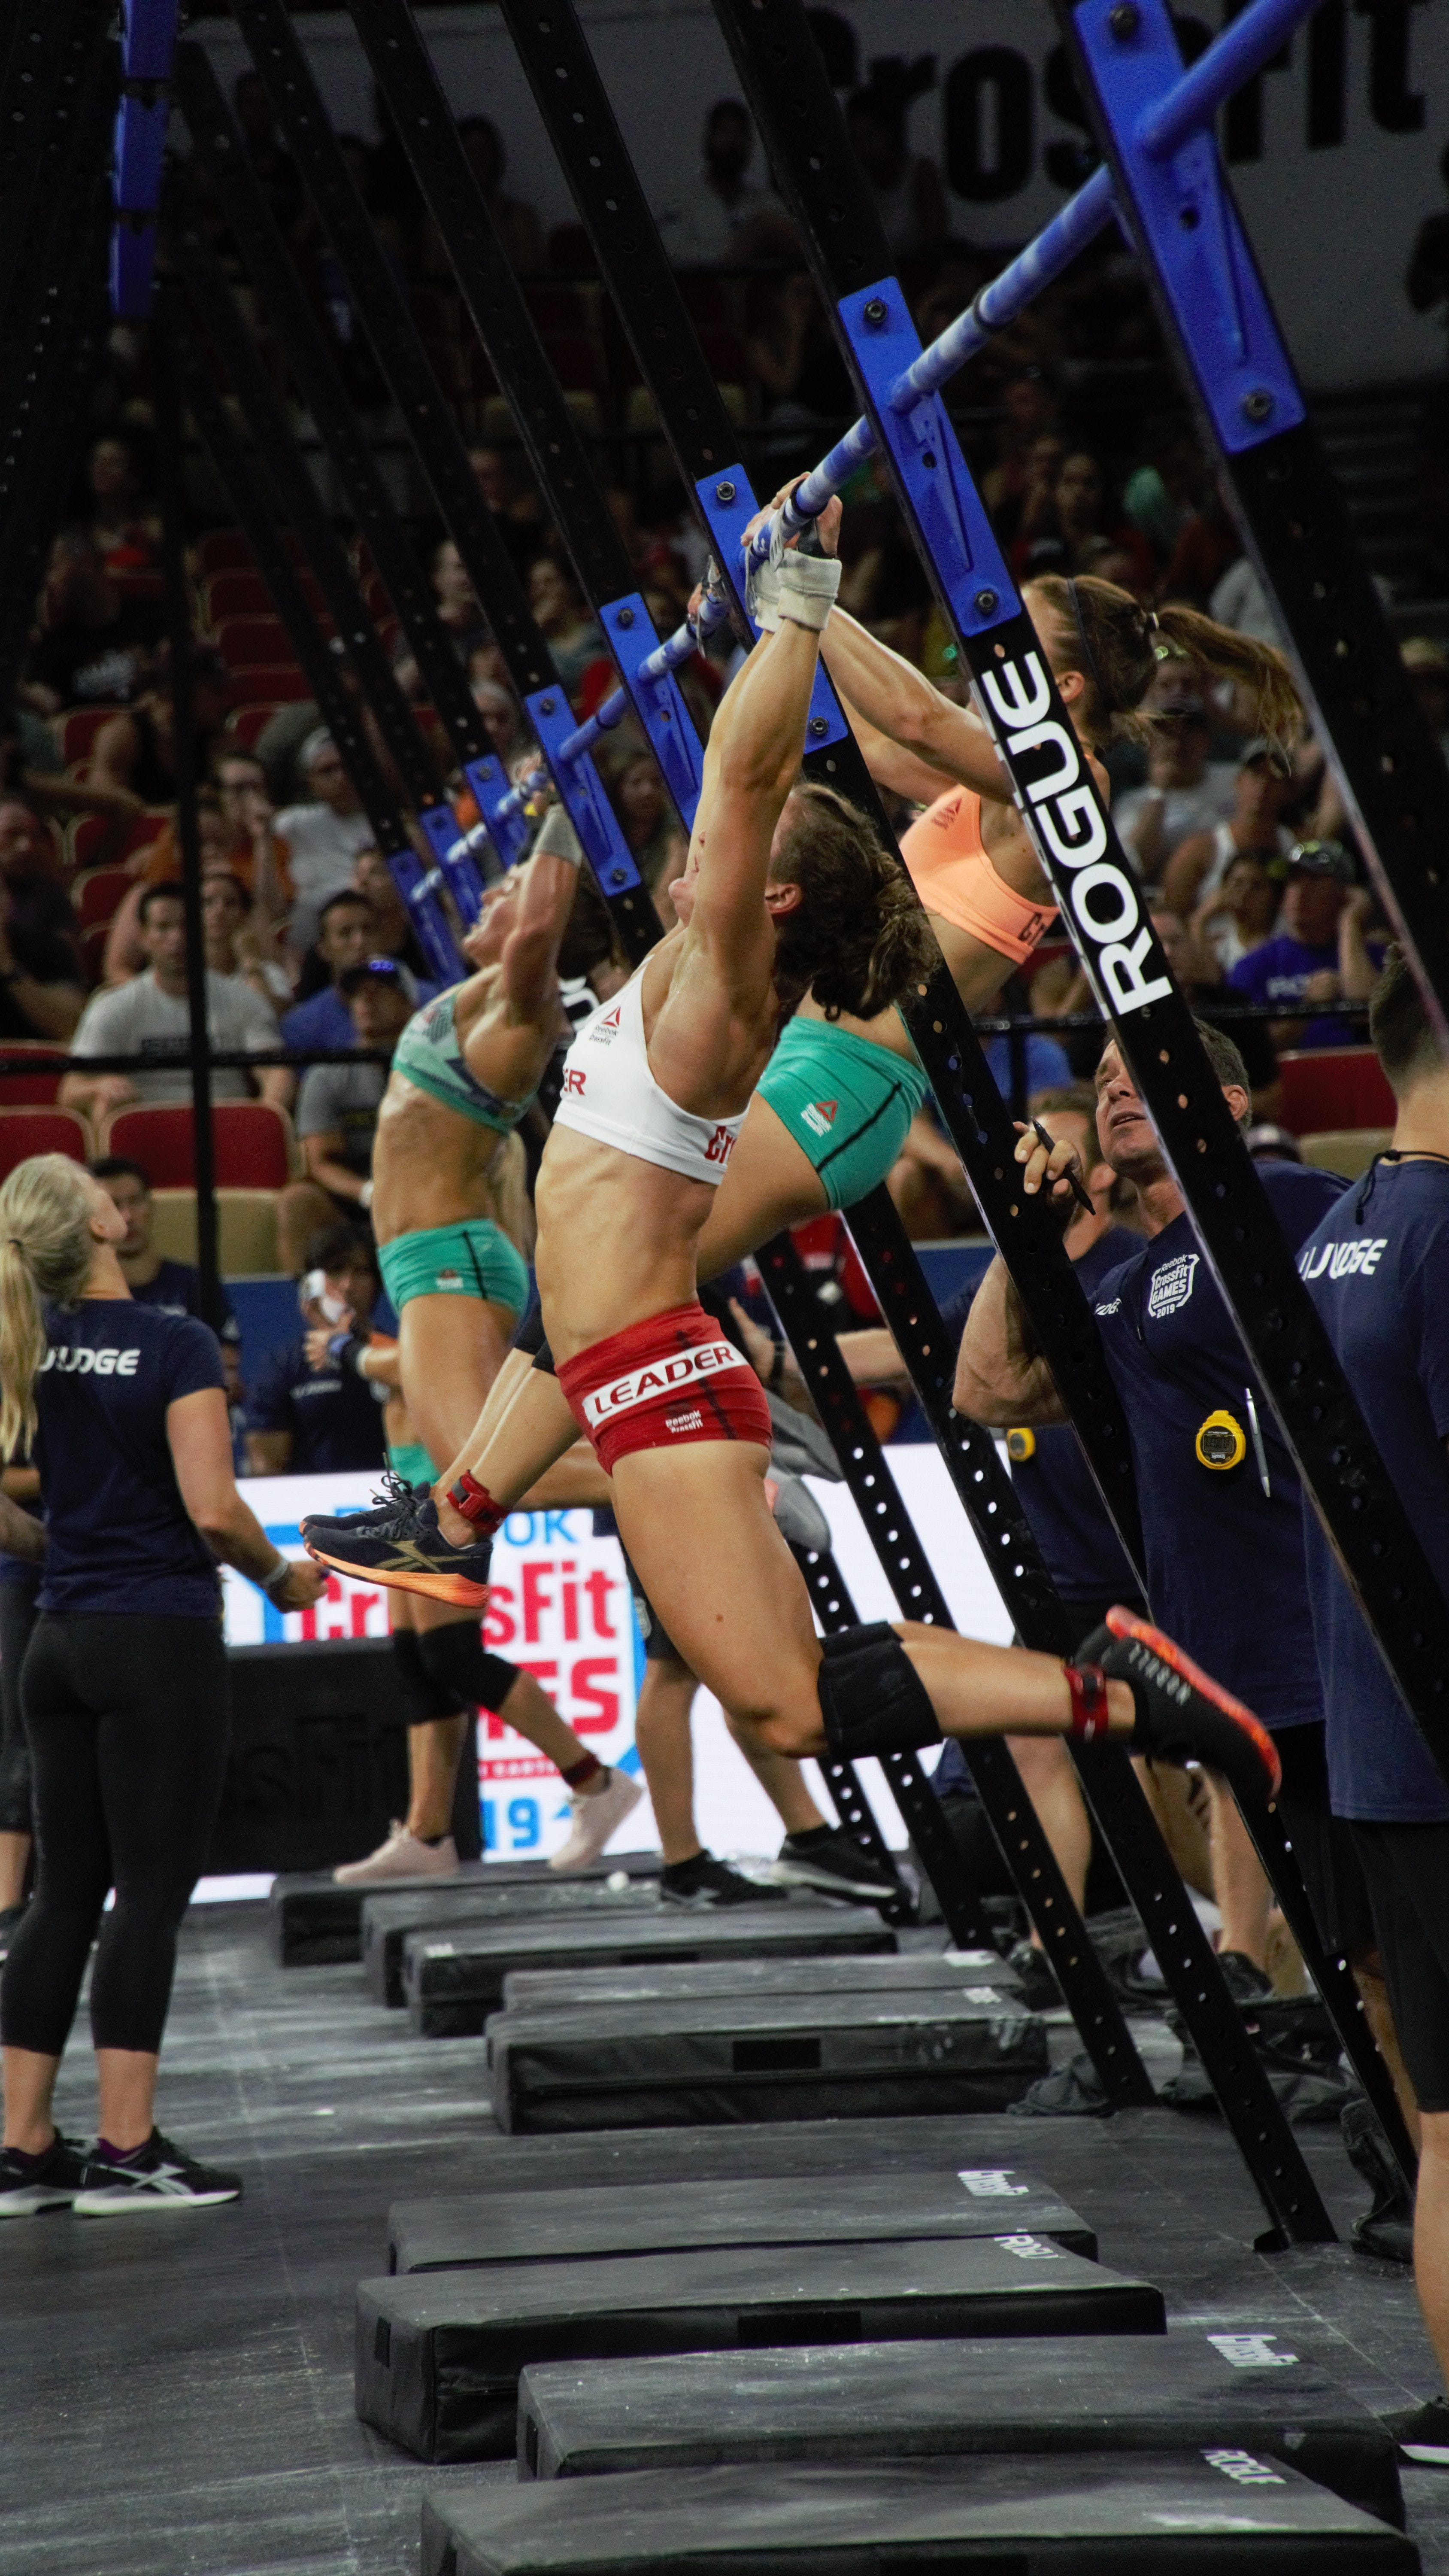 Tia Toomey pull-ups crossfit games 2019